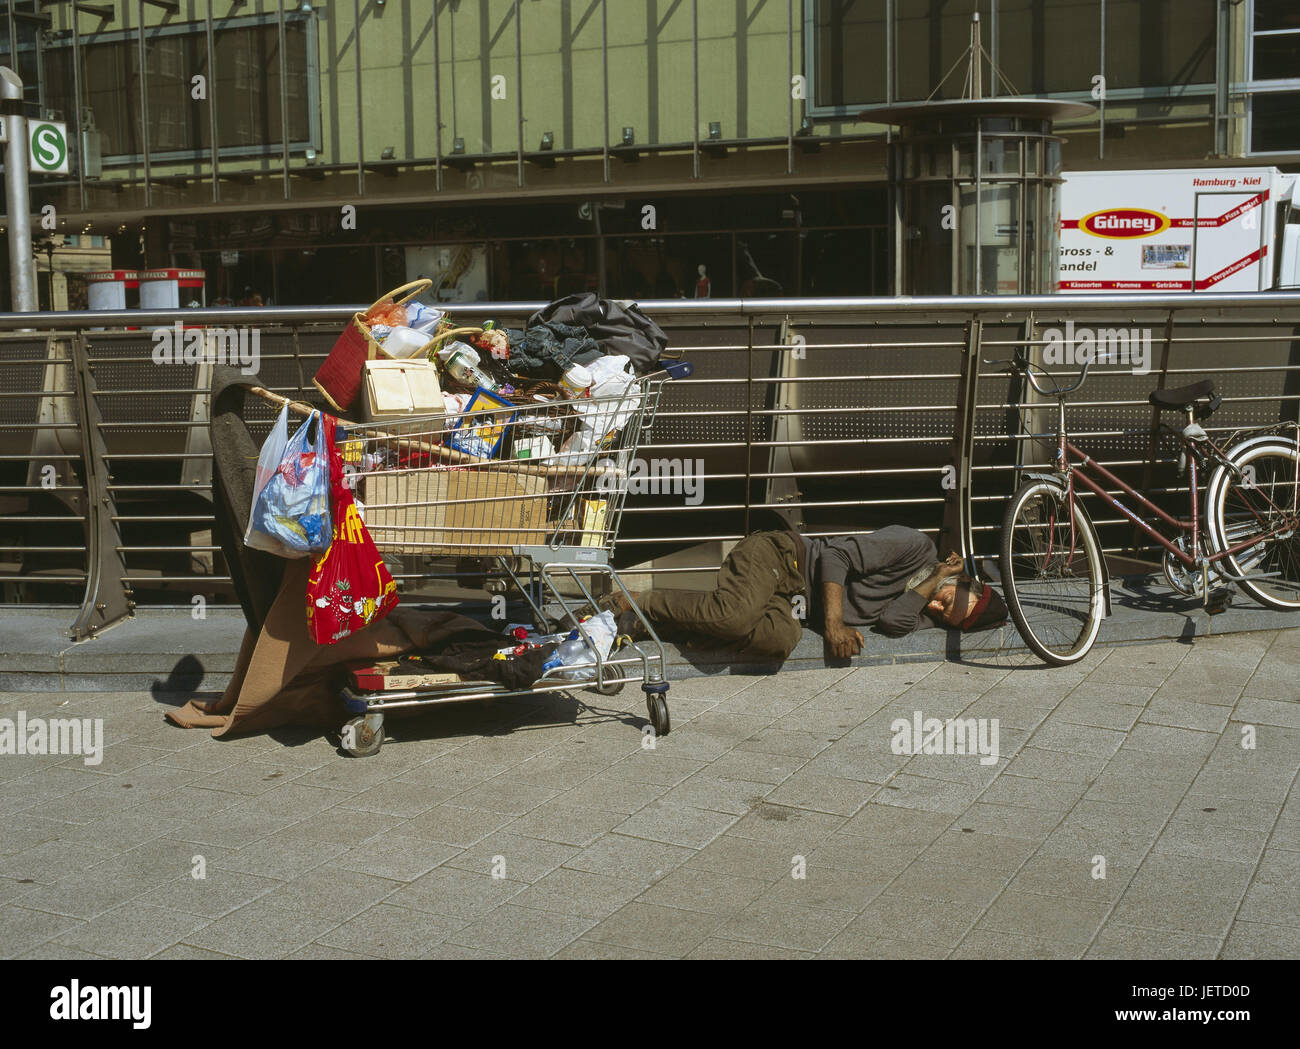 Germany, Hamburg, homeless, sleep, shopping cart, belongings, North Germany, city, Hanseatic town, port, town, city - Stock Image